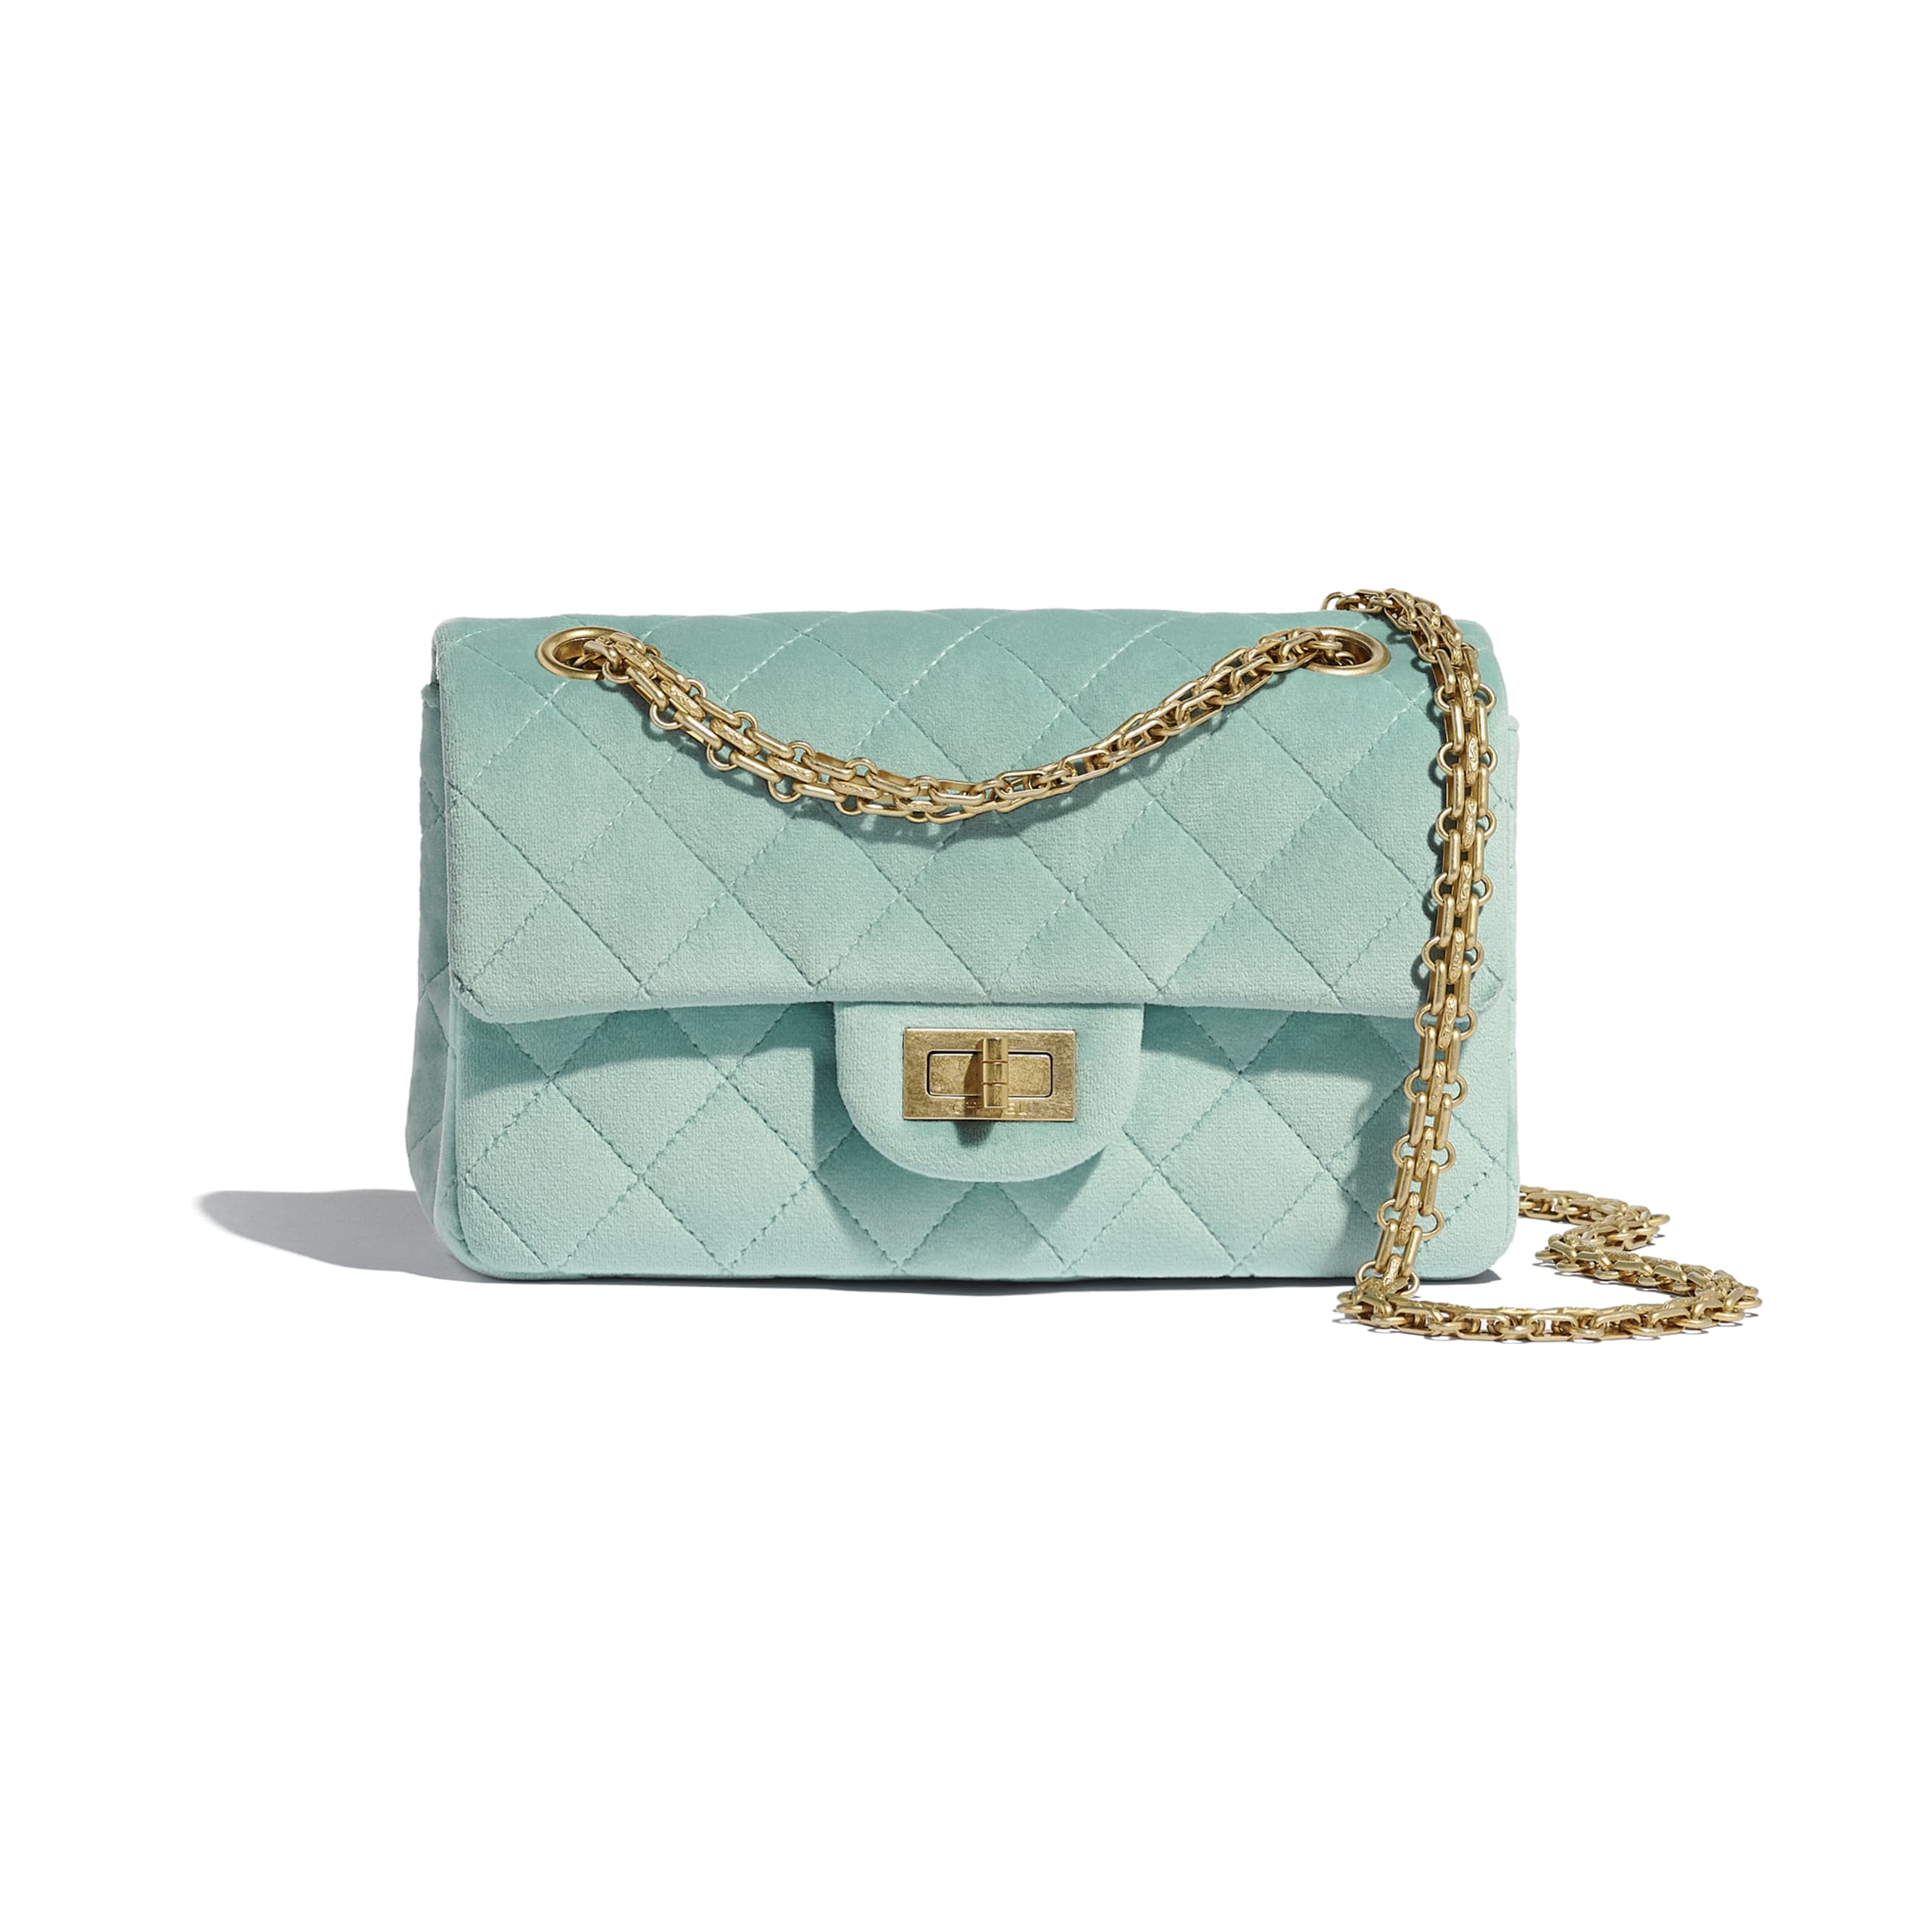 Small 2.55 Handbag - Light Blue - Velvet & Gold Metal - Default view - see standard sized version